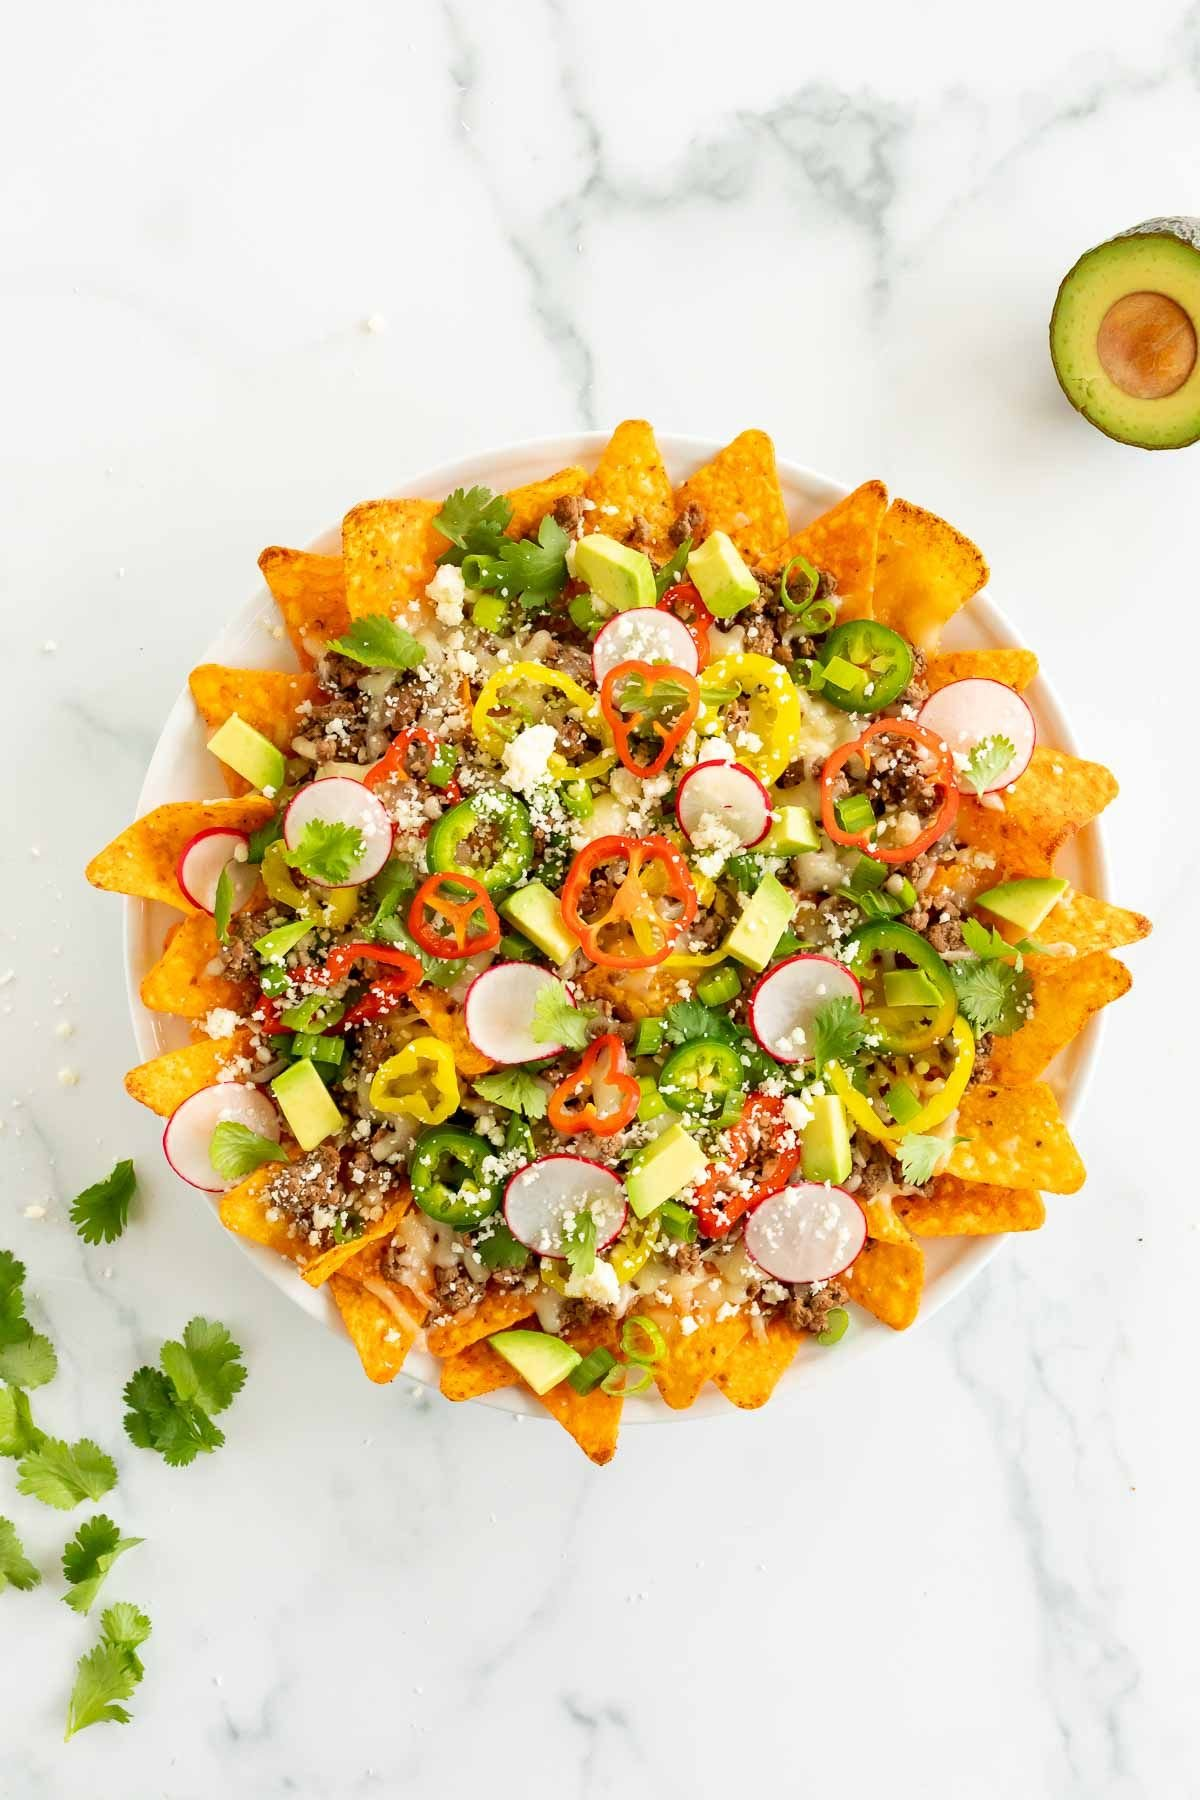 A white plate of nachos with Doritos, loaded with toppings